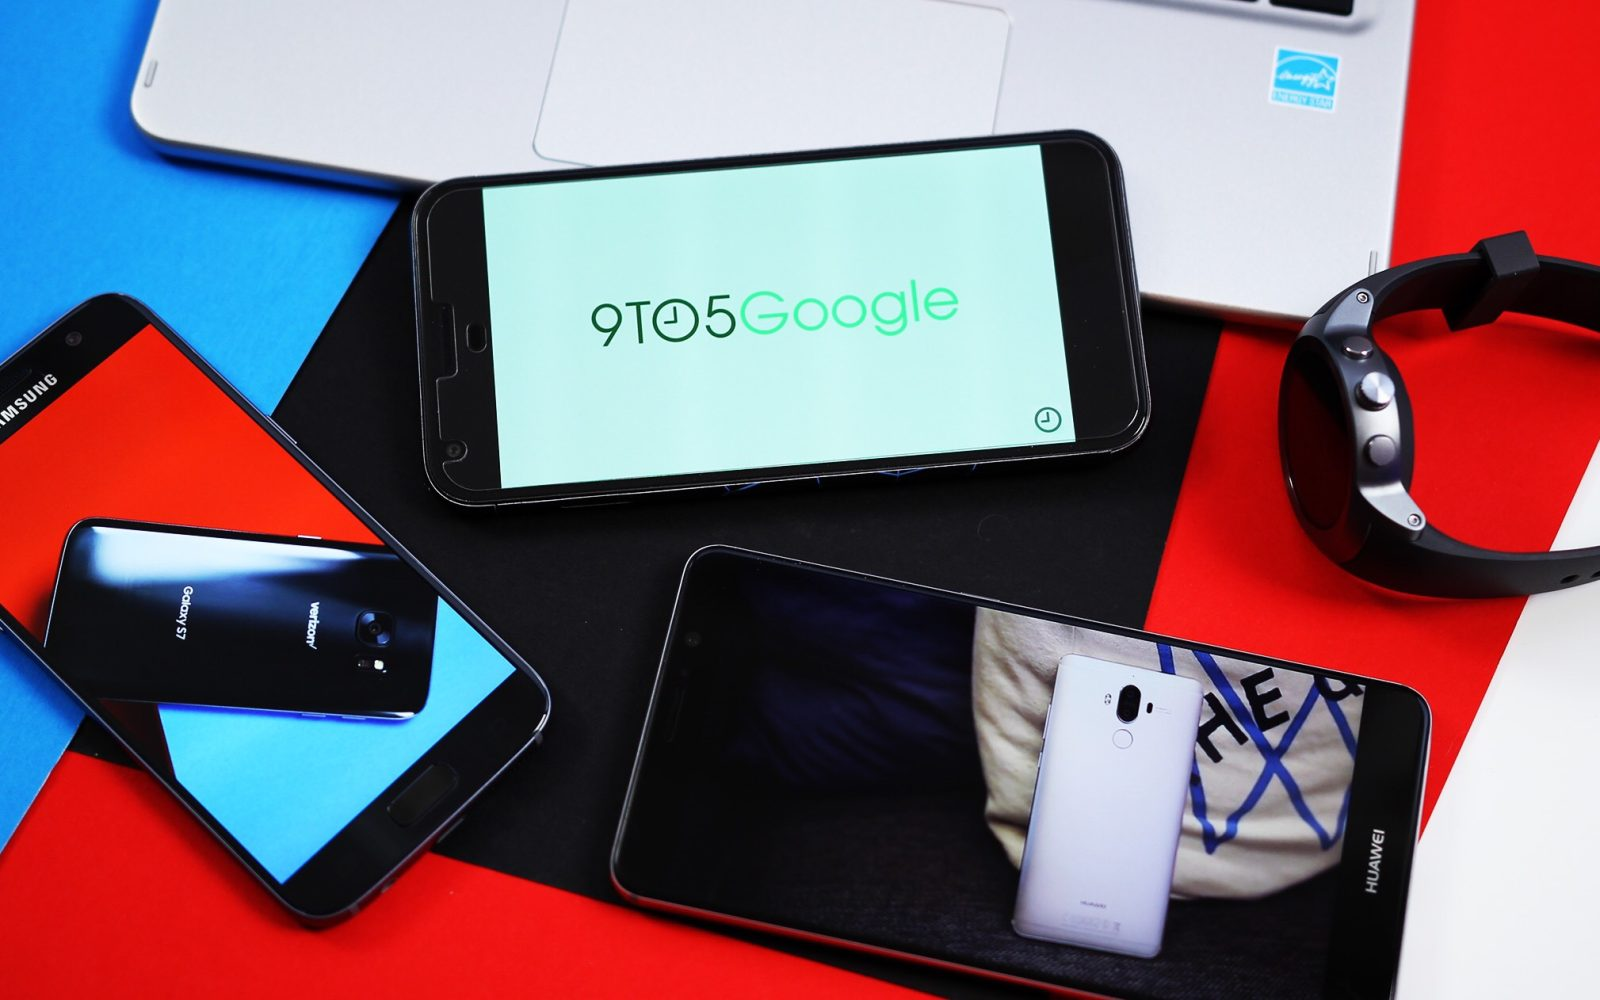 This week's top stories: Project Fi 'Travel Trolley', Google Home